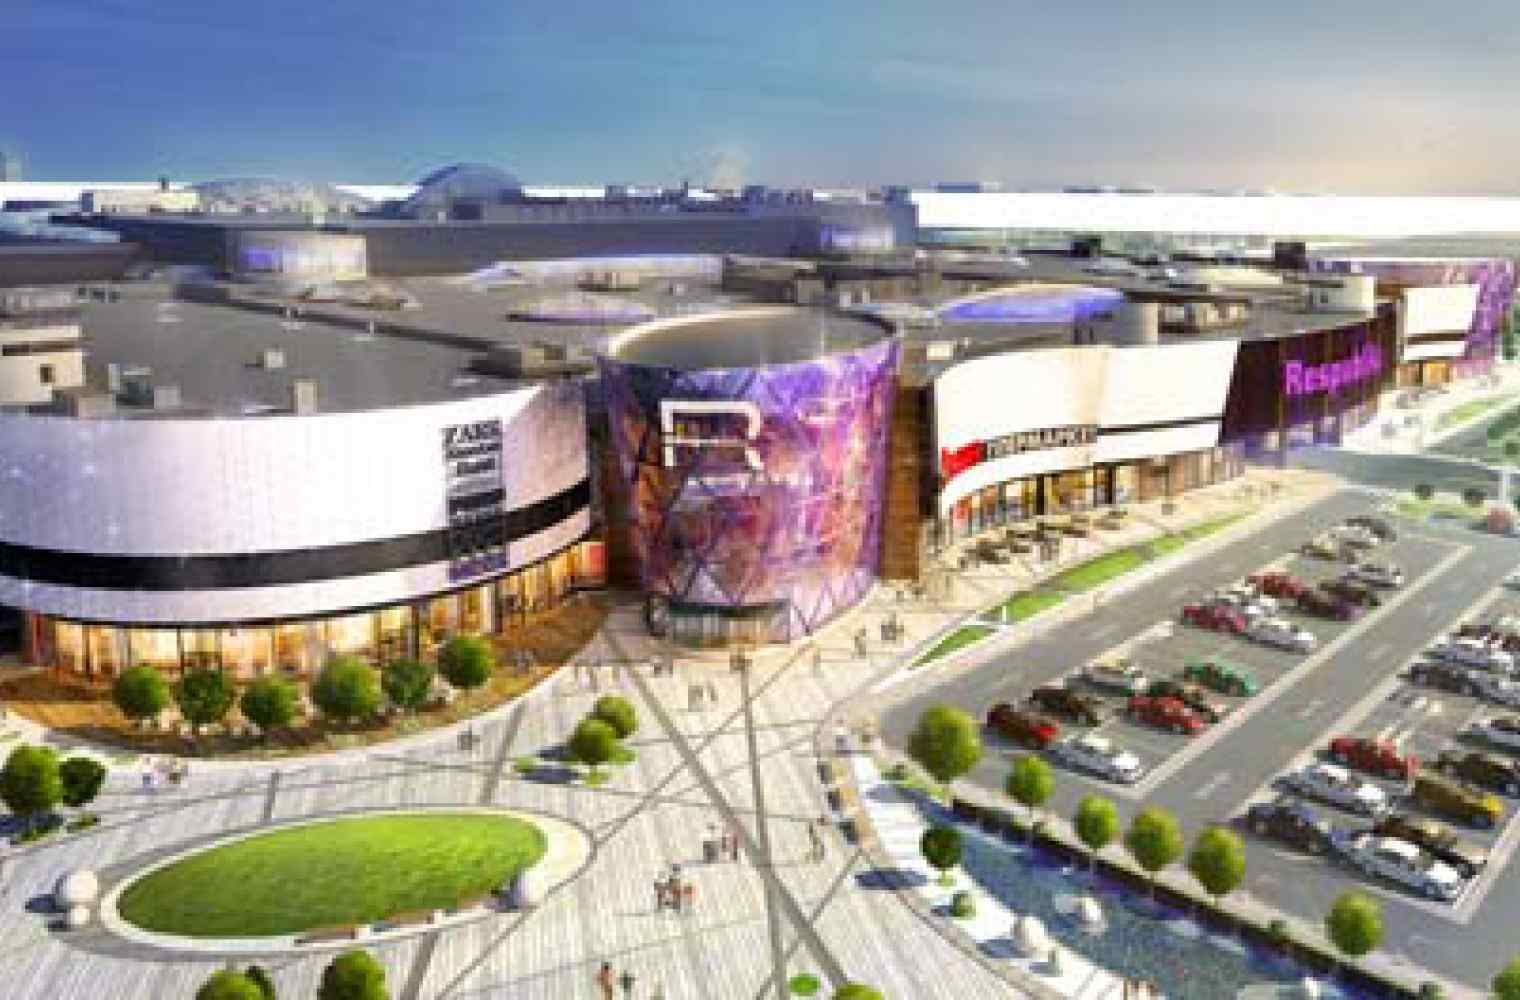 Seven shops of Inditex Group will appear in Shopping and entertainment center Respublika at once